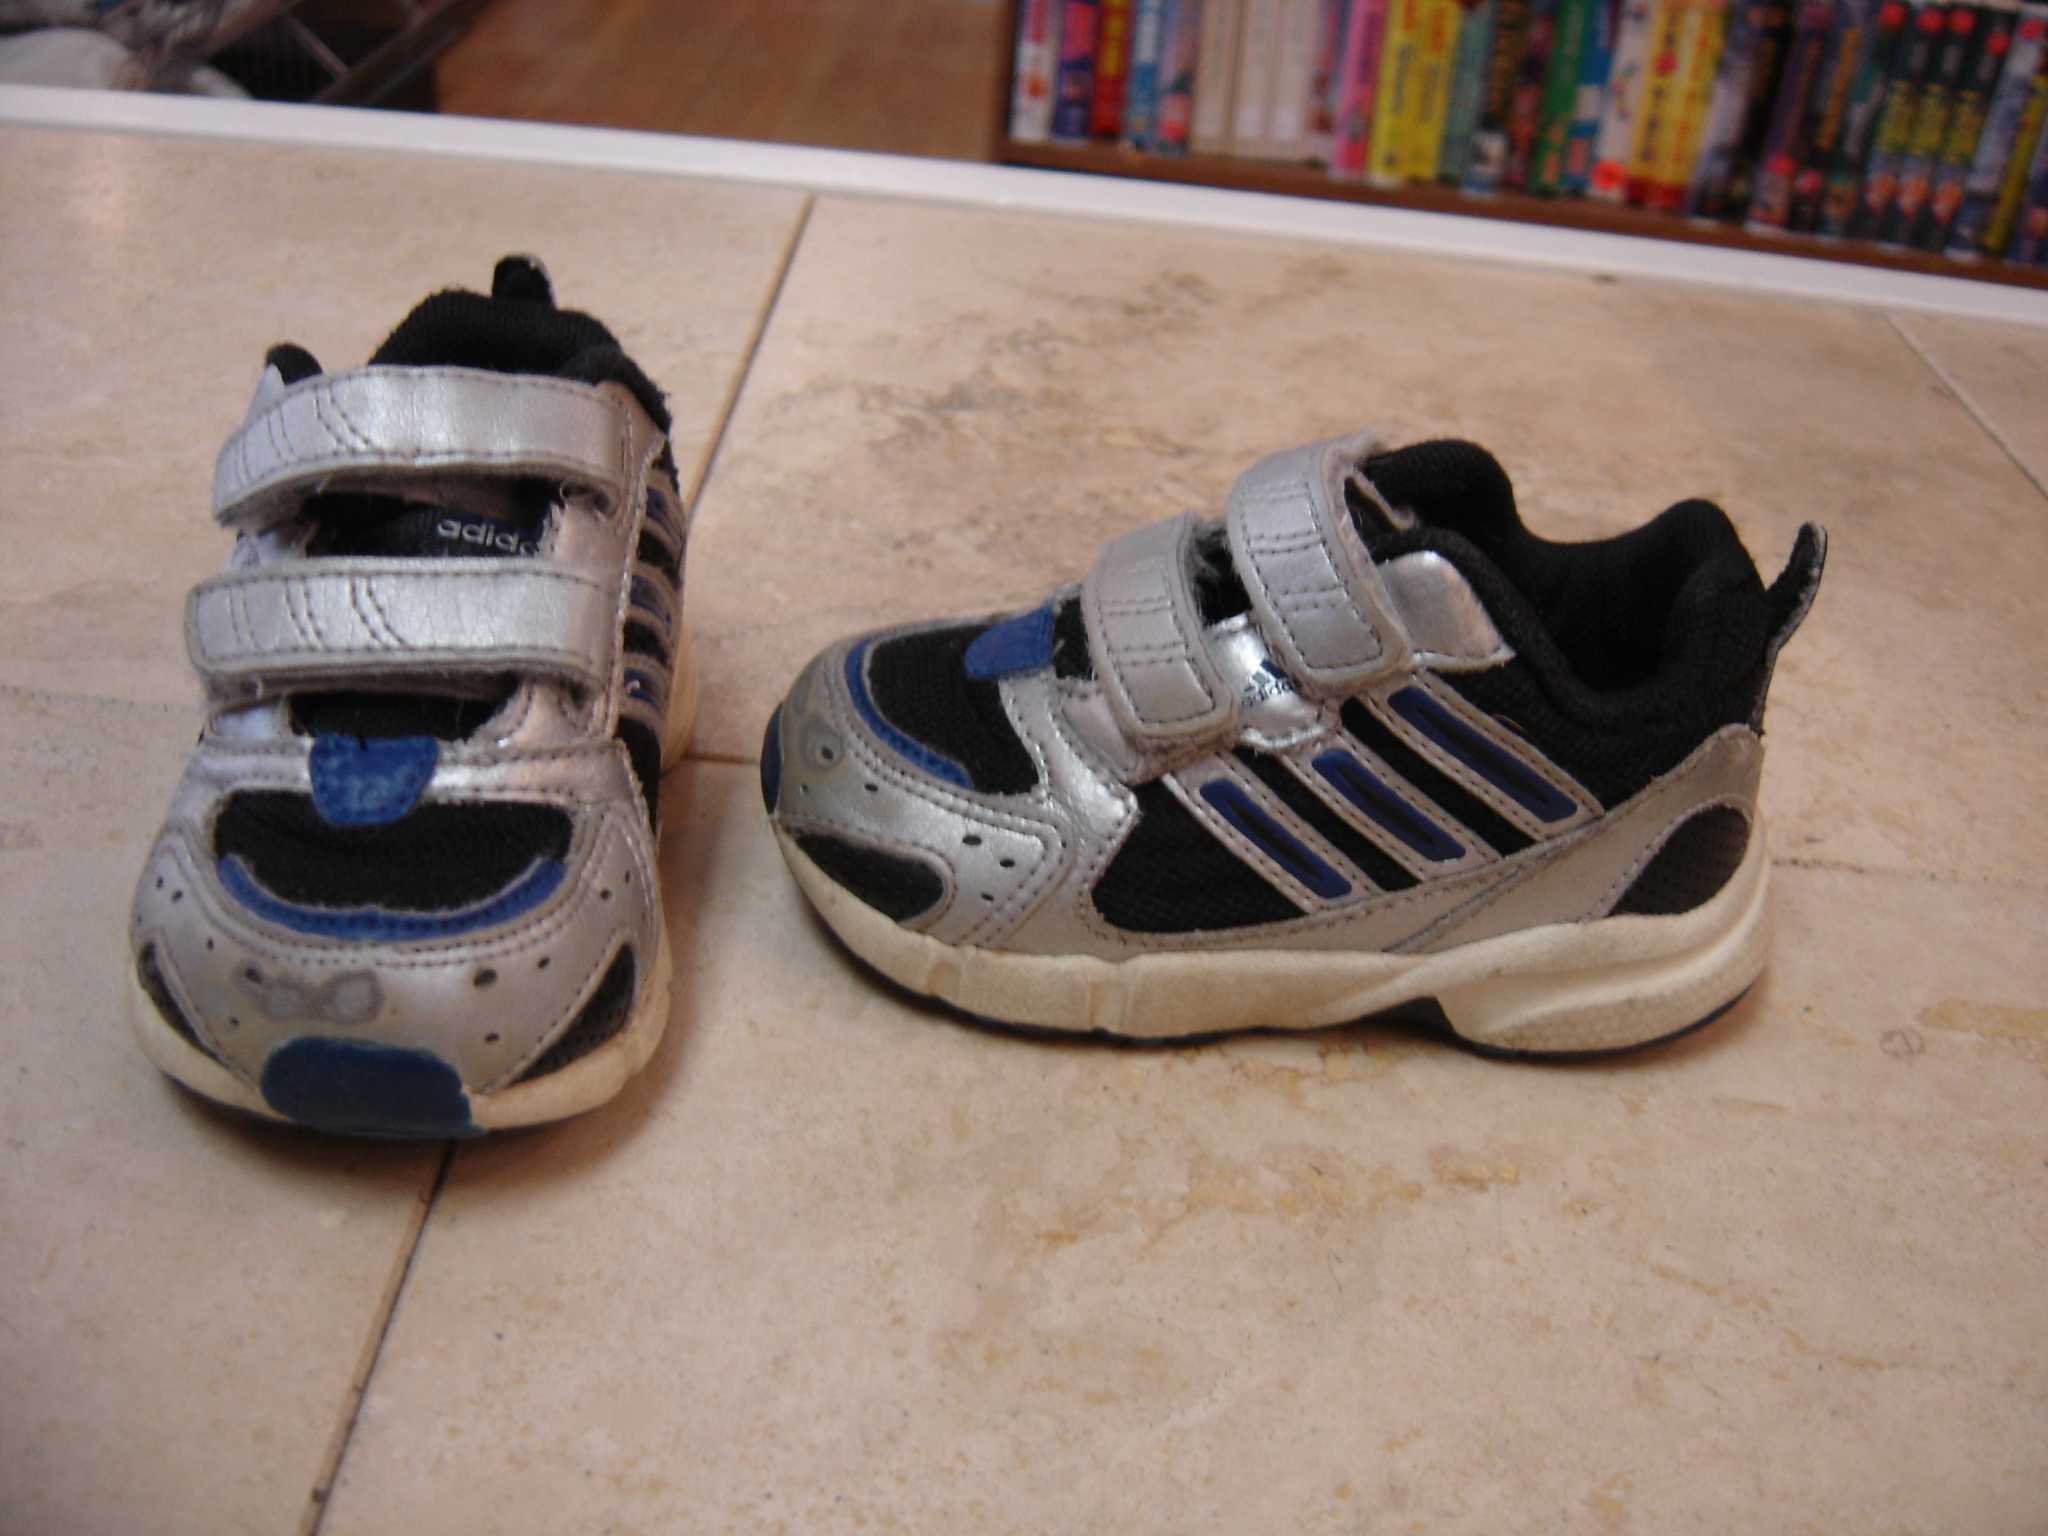 Adidas Size Infant Toddler 5 Grey Black and Blue Sneakers w Velcro